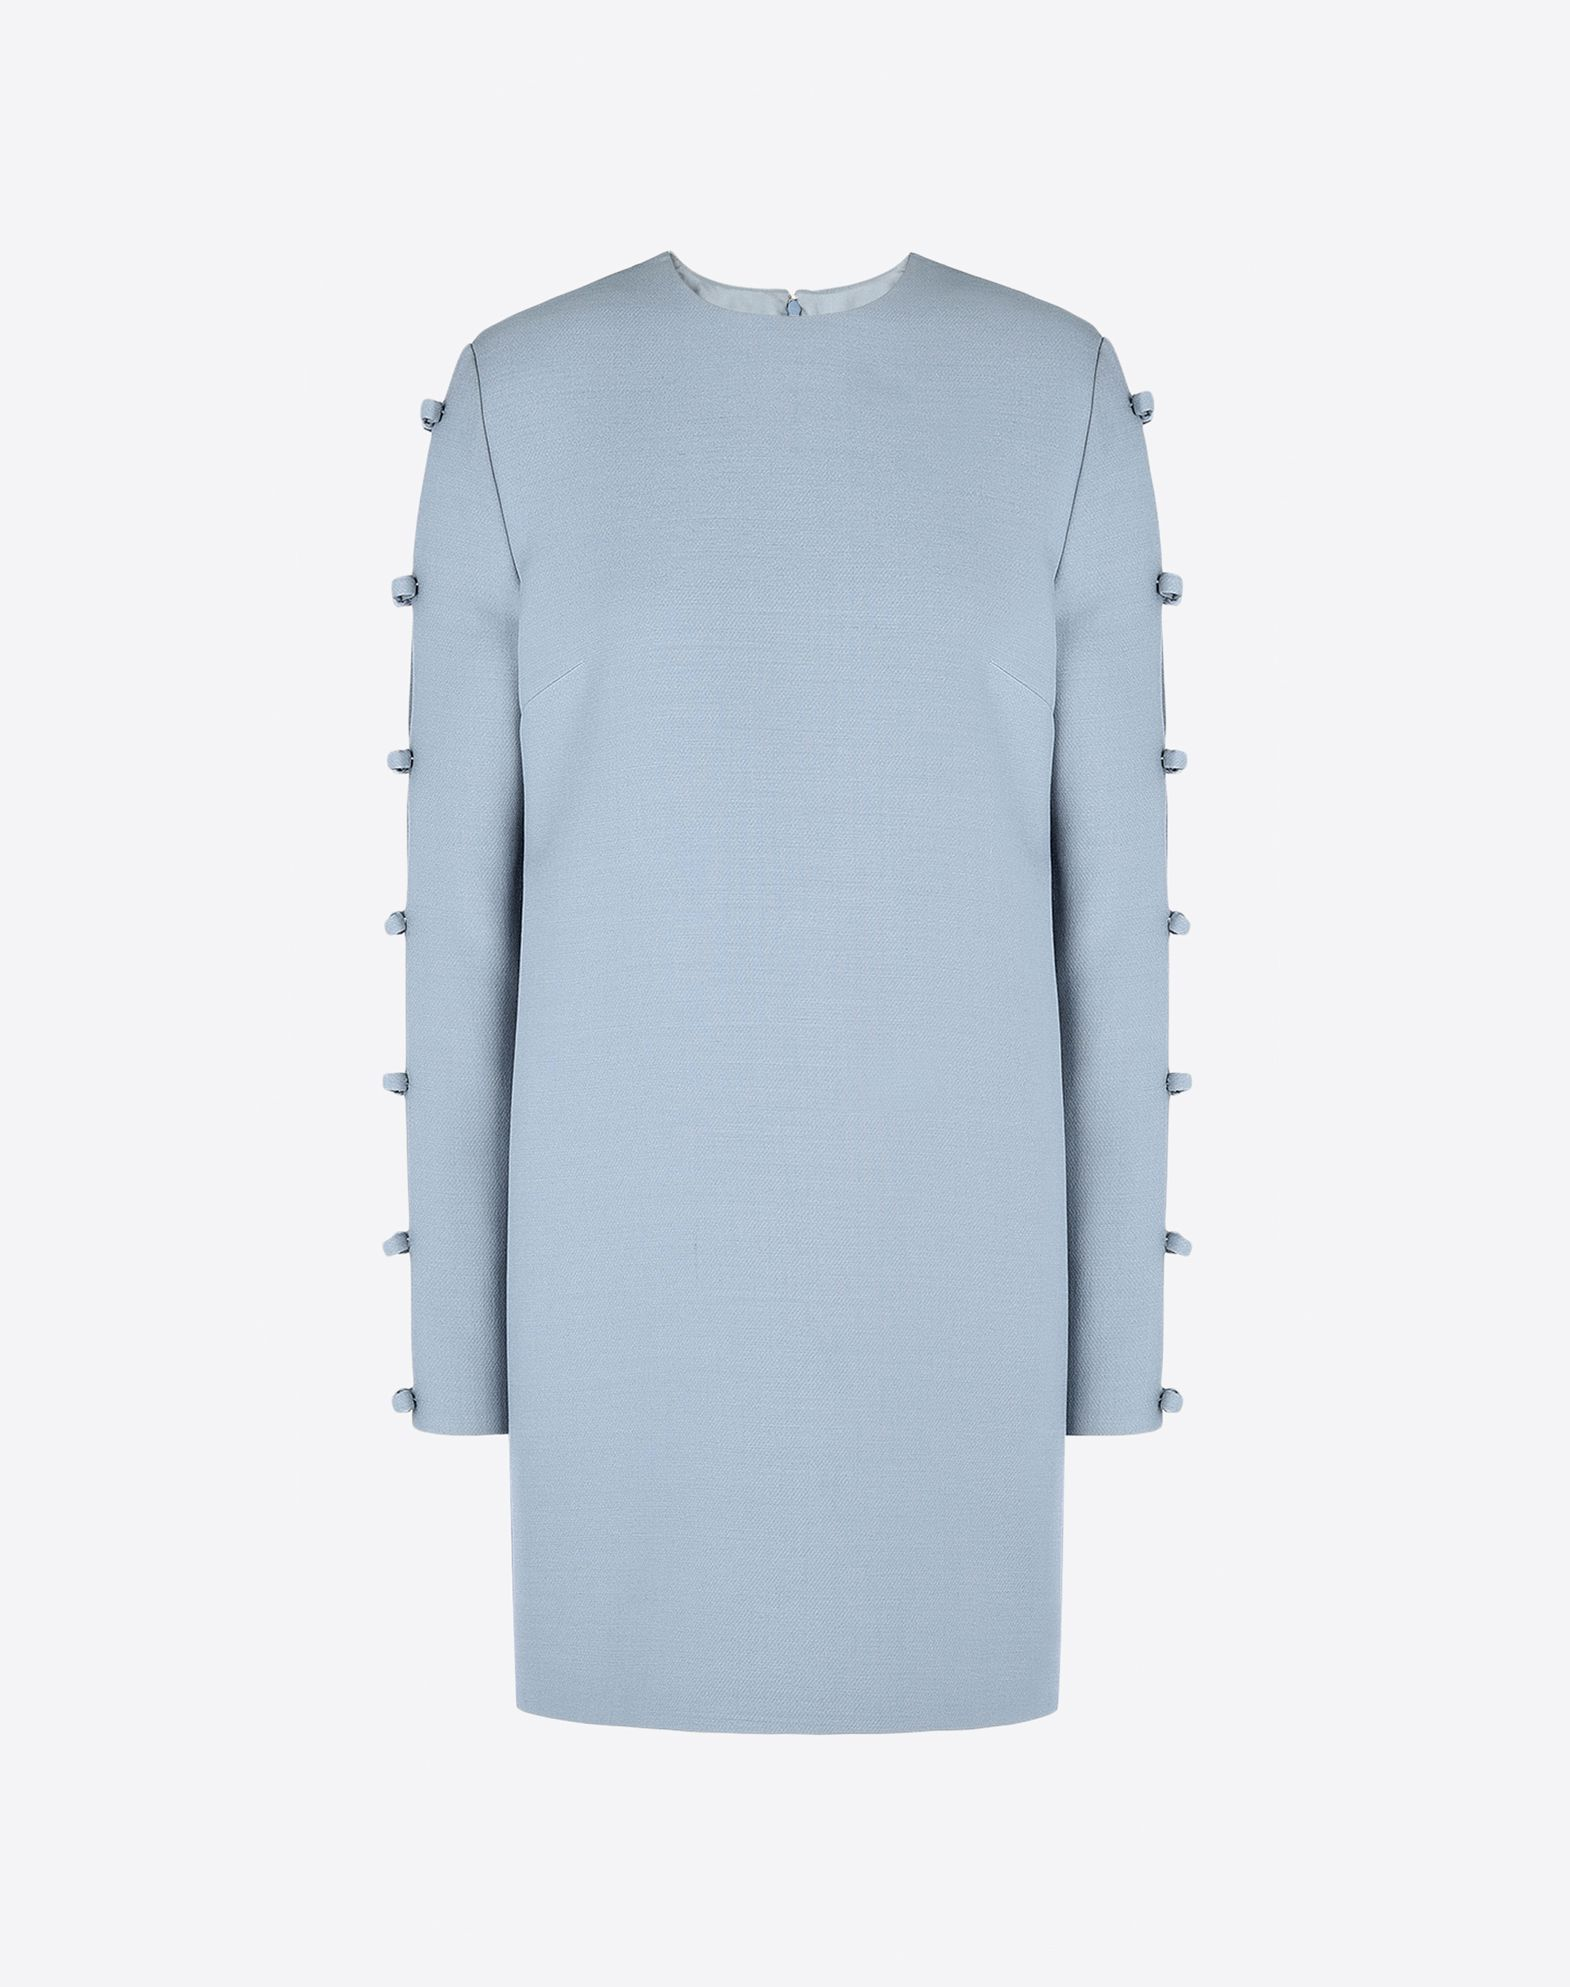 VALENTINO Darts Bow detailing Crêpe Solid colour Round collar Hook-and-bar, zip Multipockets Lined interior Long sleeves  34629883fw